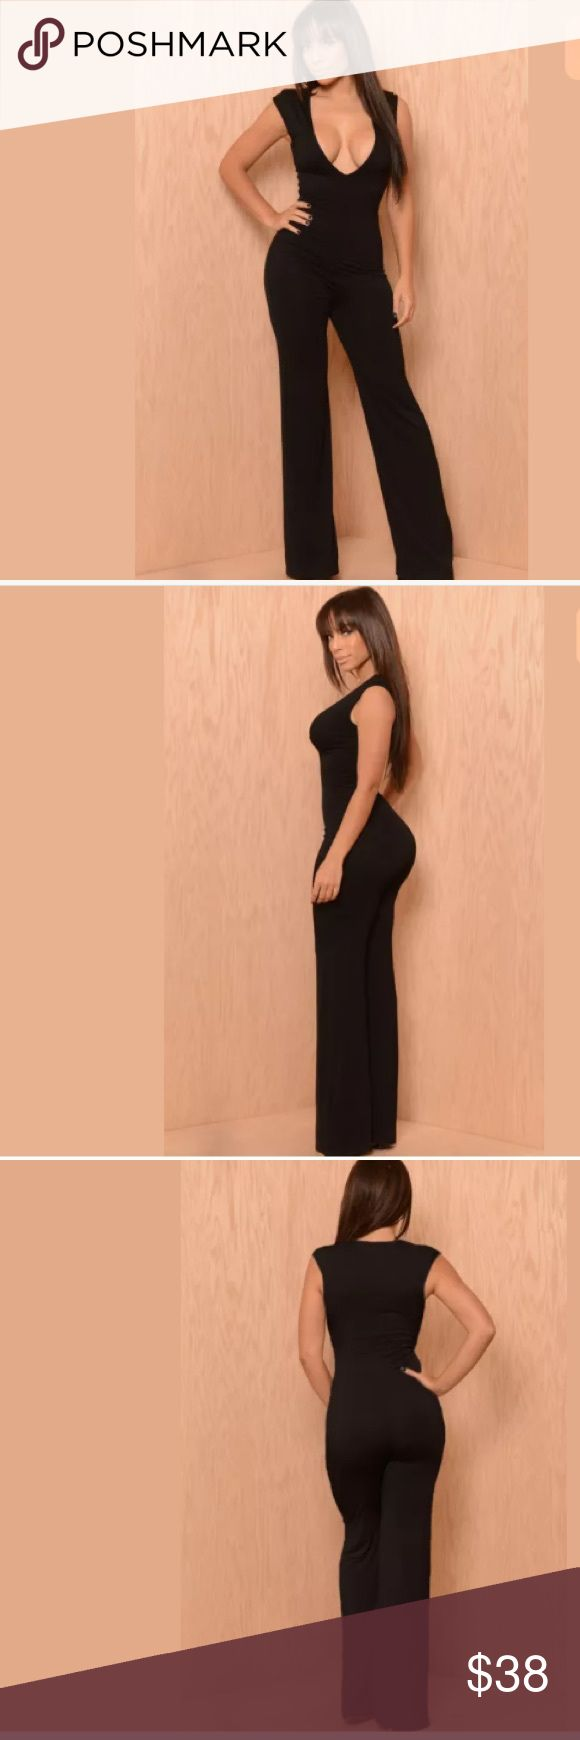 The Carrie Underwood sexy jumper sexy, black, one size, jumpsuit; this is a polyester spandex blend so it should fit most people size small and medium Pants Jumpsuits & Rompers